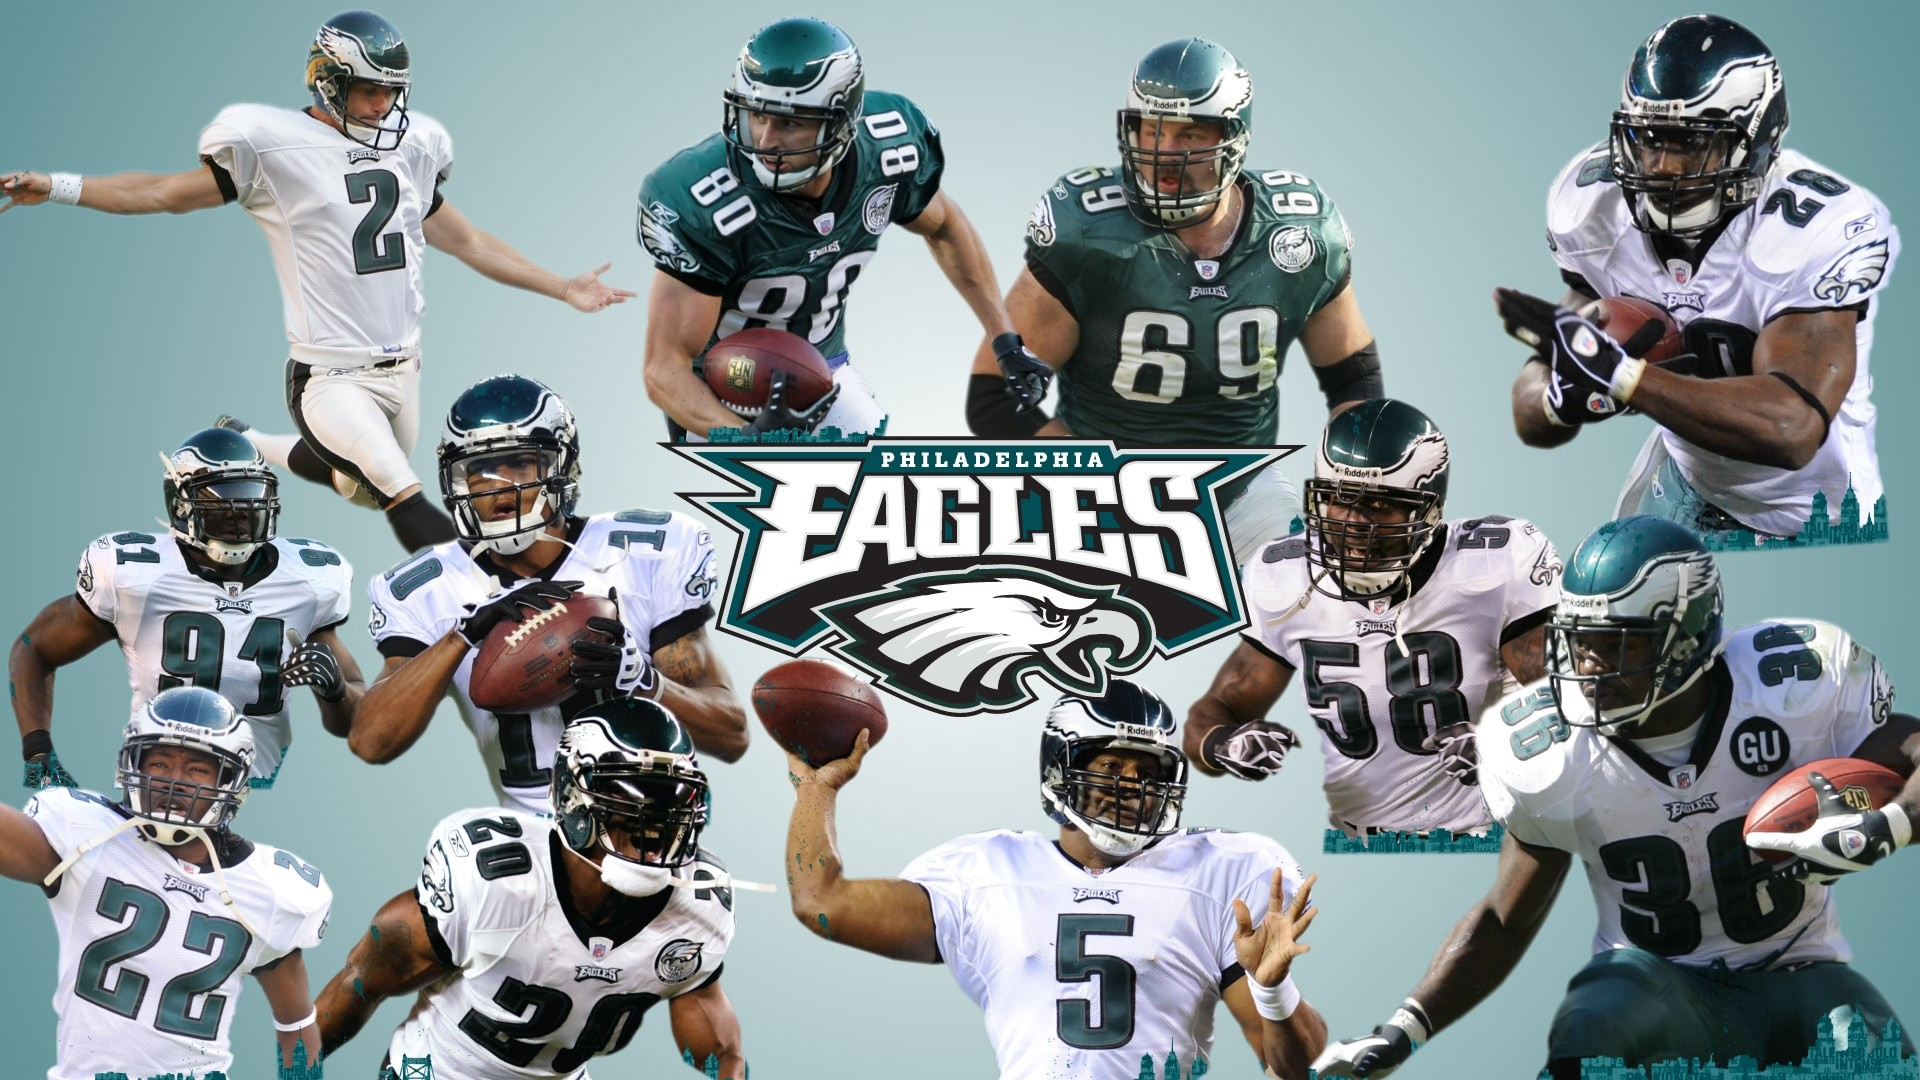 1920x1080 Philadelphia Eagles Wallpaper HD